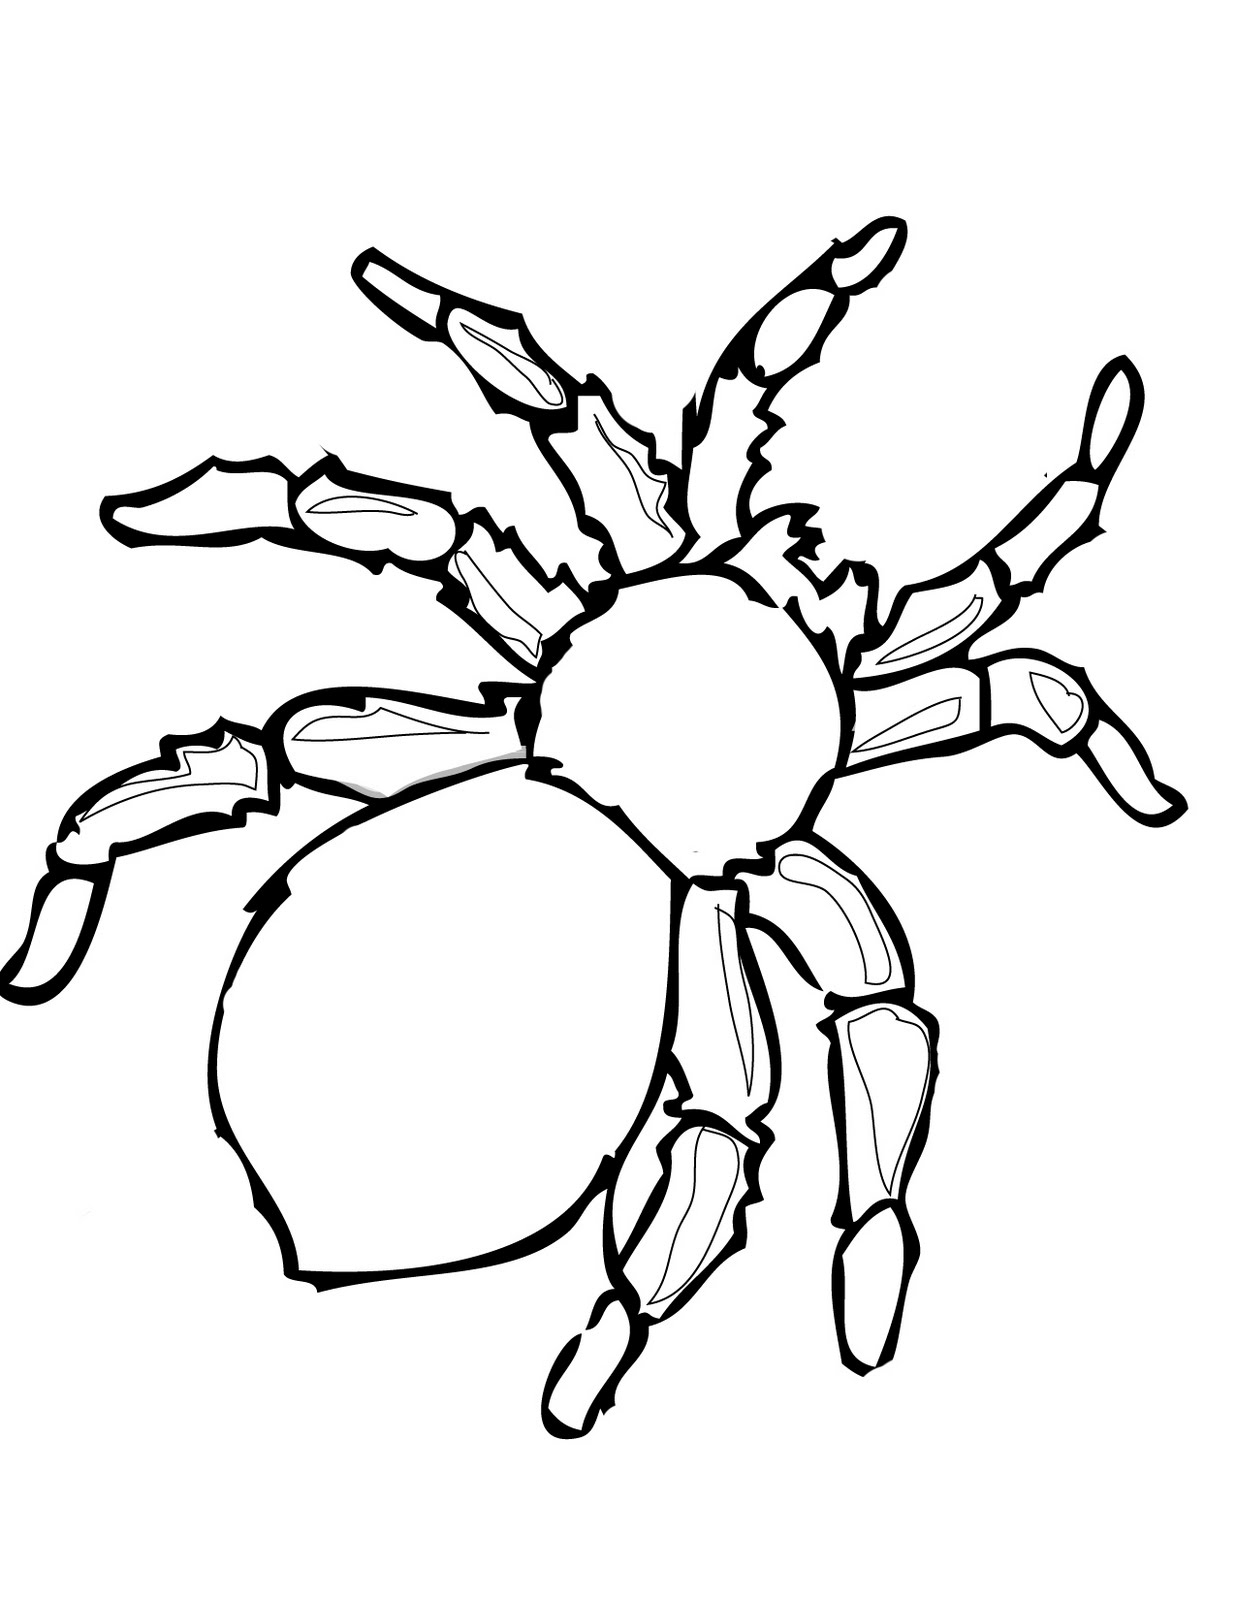 Free Spider Web Outline, Download Free Clip Art, Free Clip.